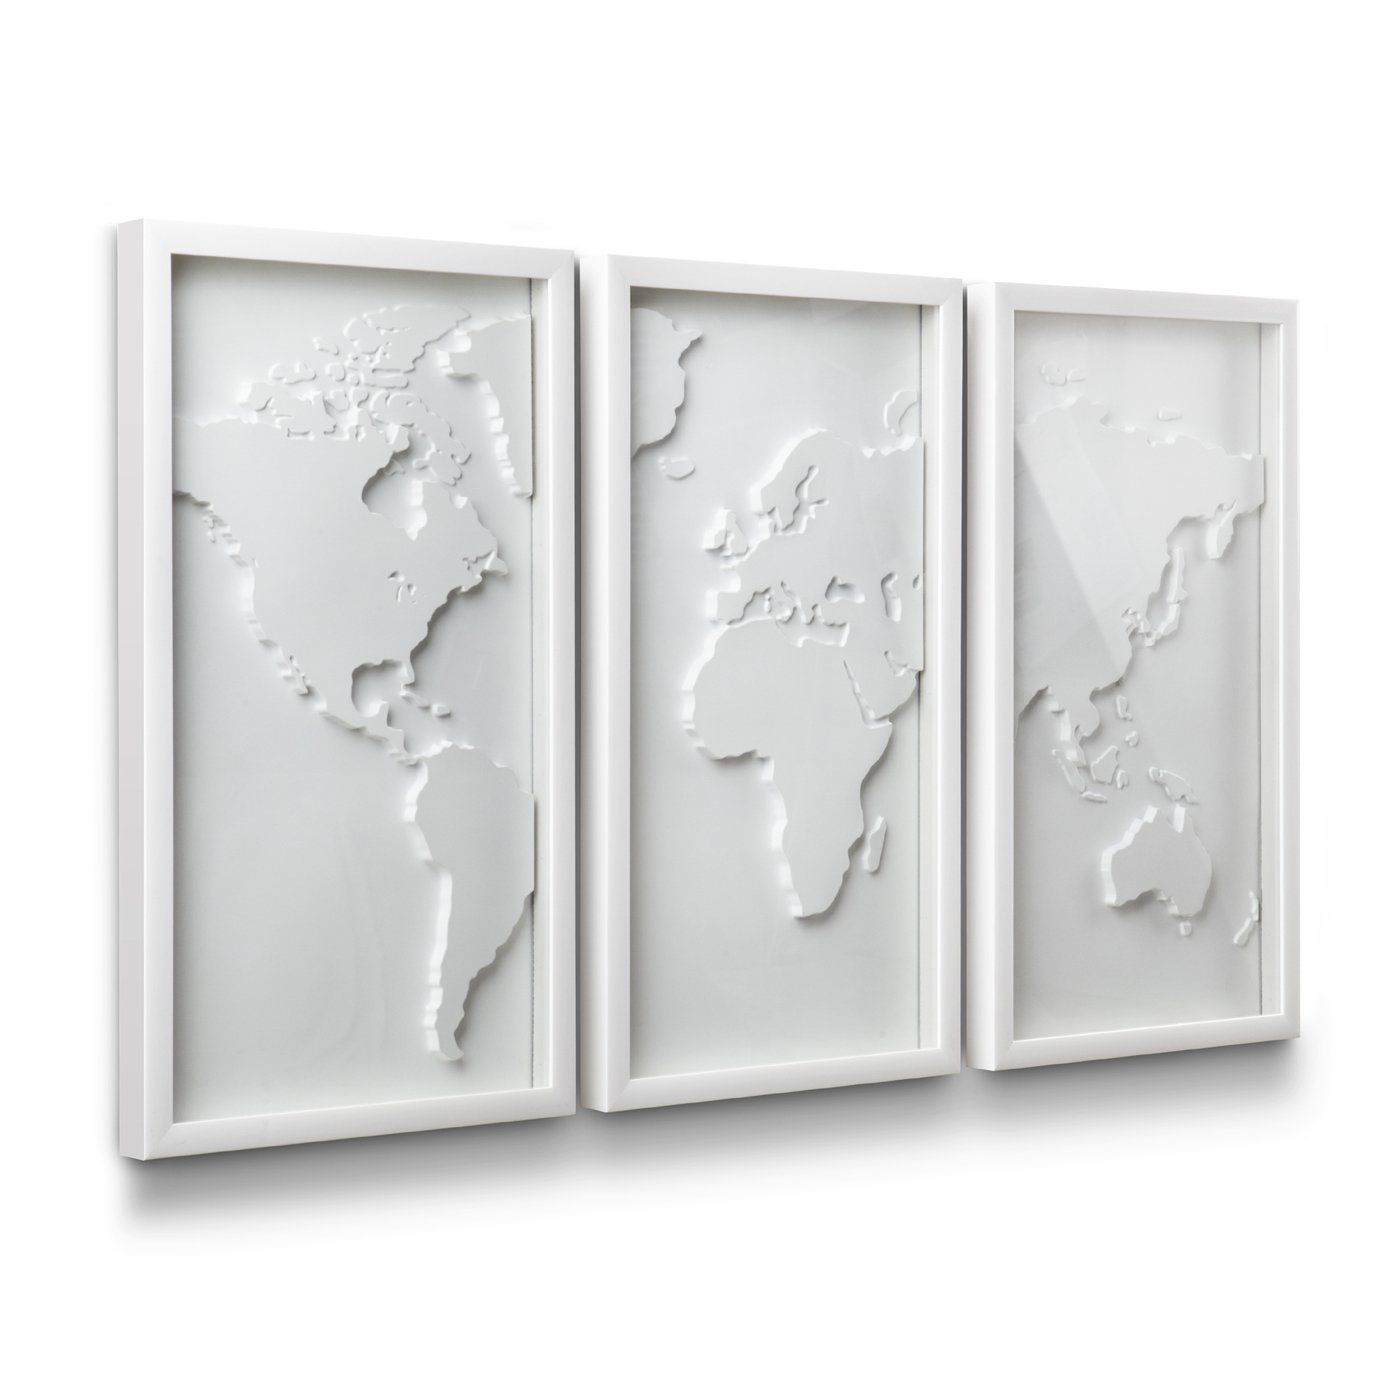 Umbra 470180 660 mapster wall decor set of 3 lowes canada umbra 470180 660 mapster wall decor set of 3 lowes canada jeuxipadfo Gallery